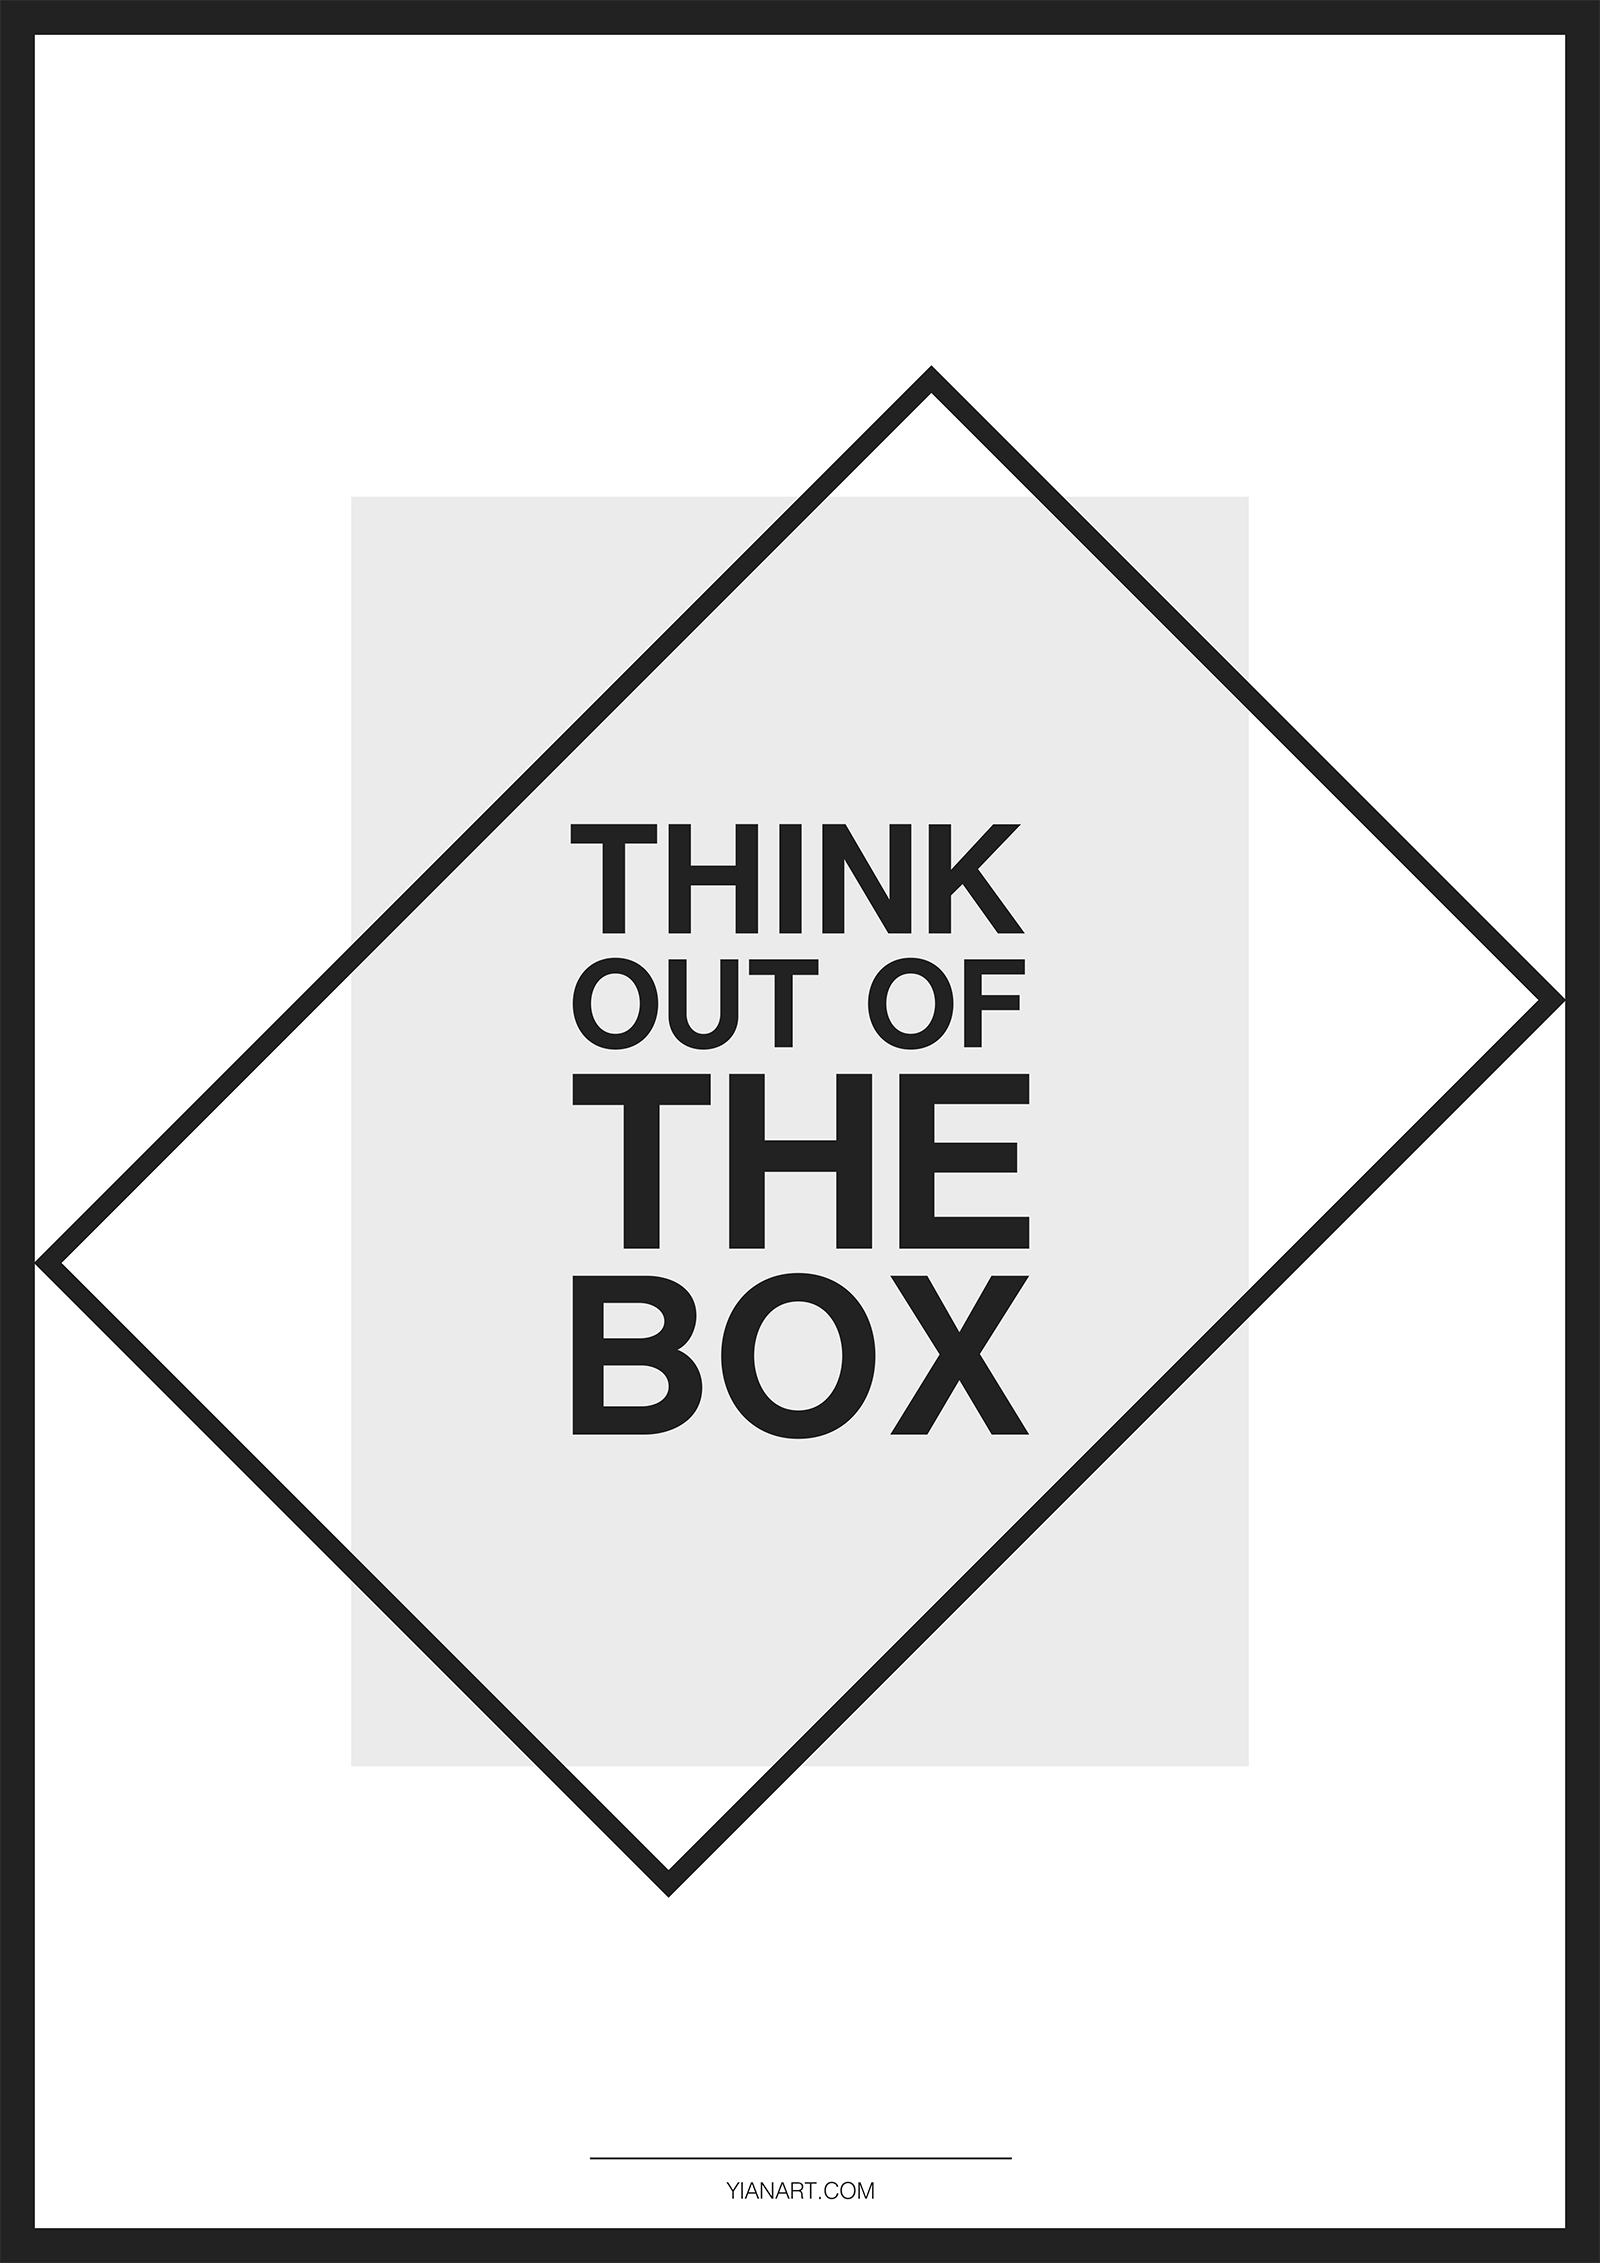 Graphic Design Posters_Think out of the box